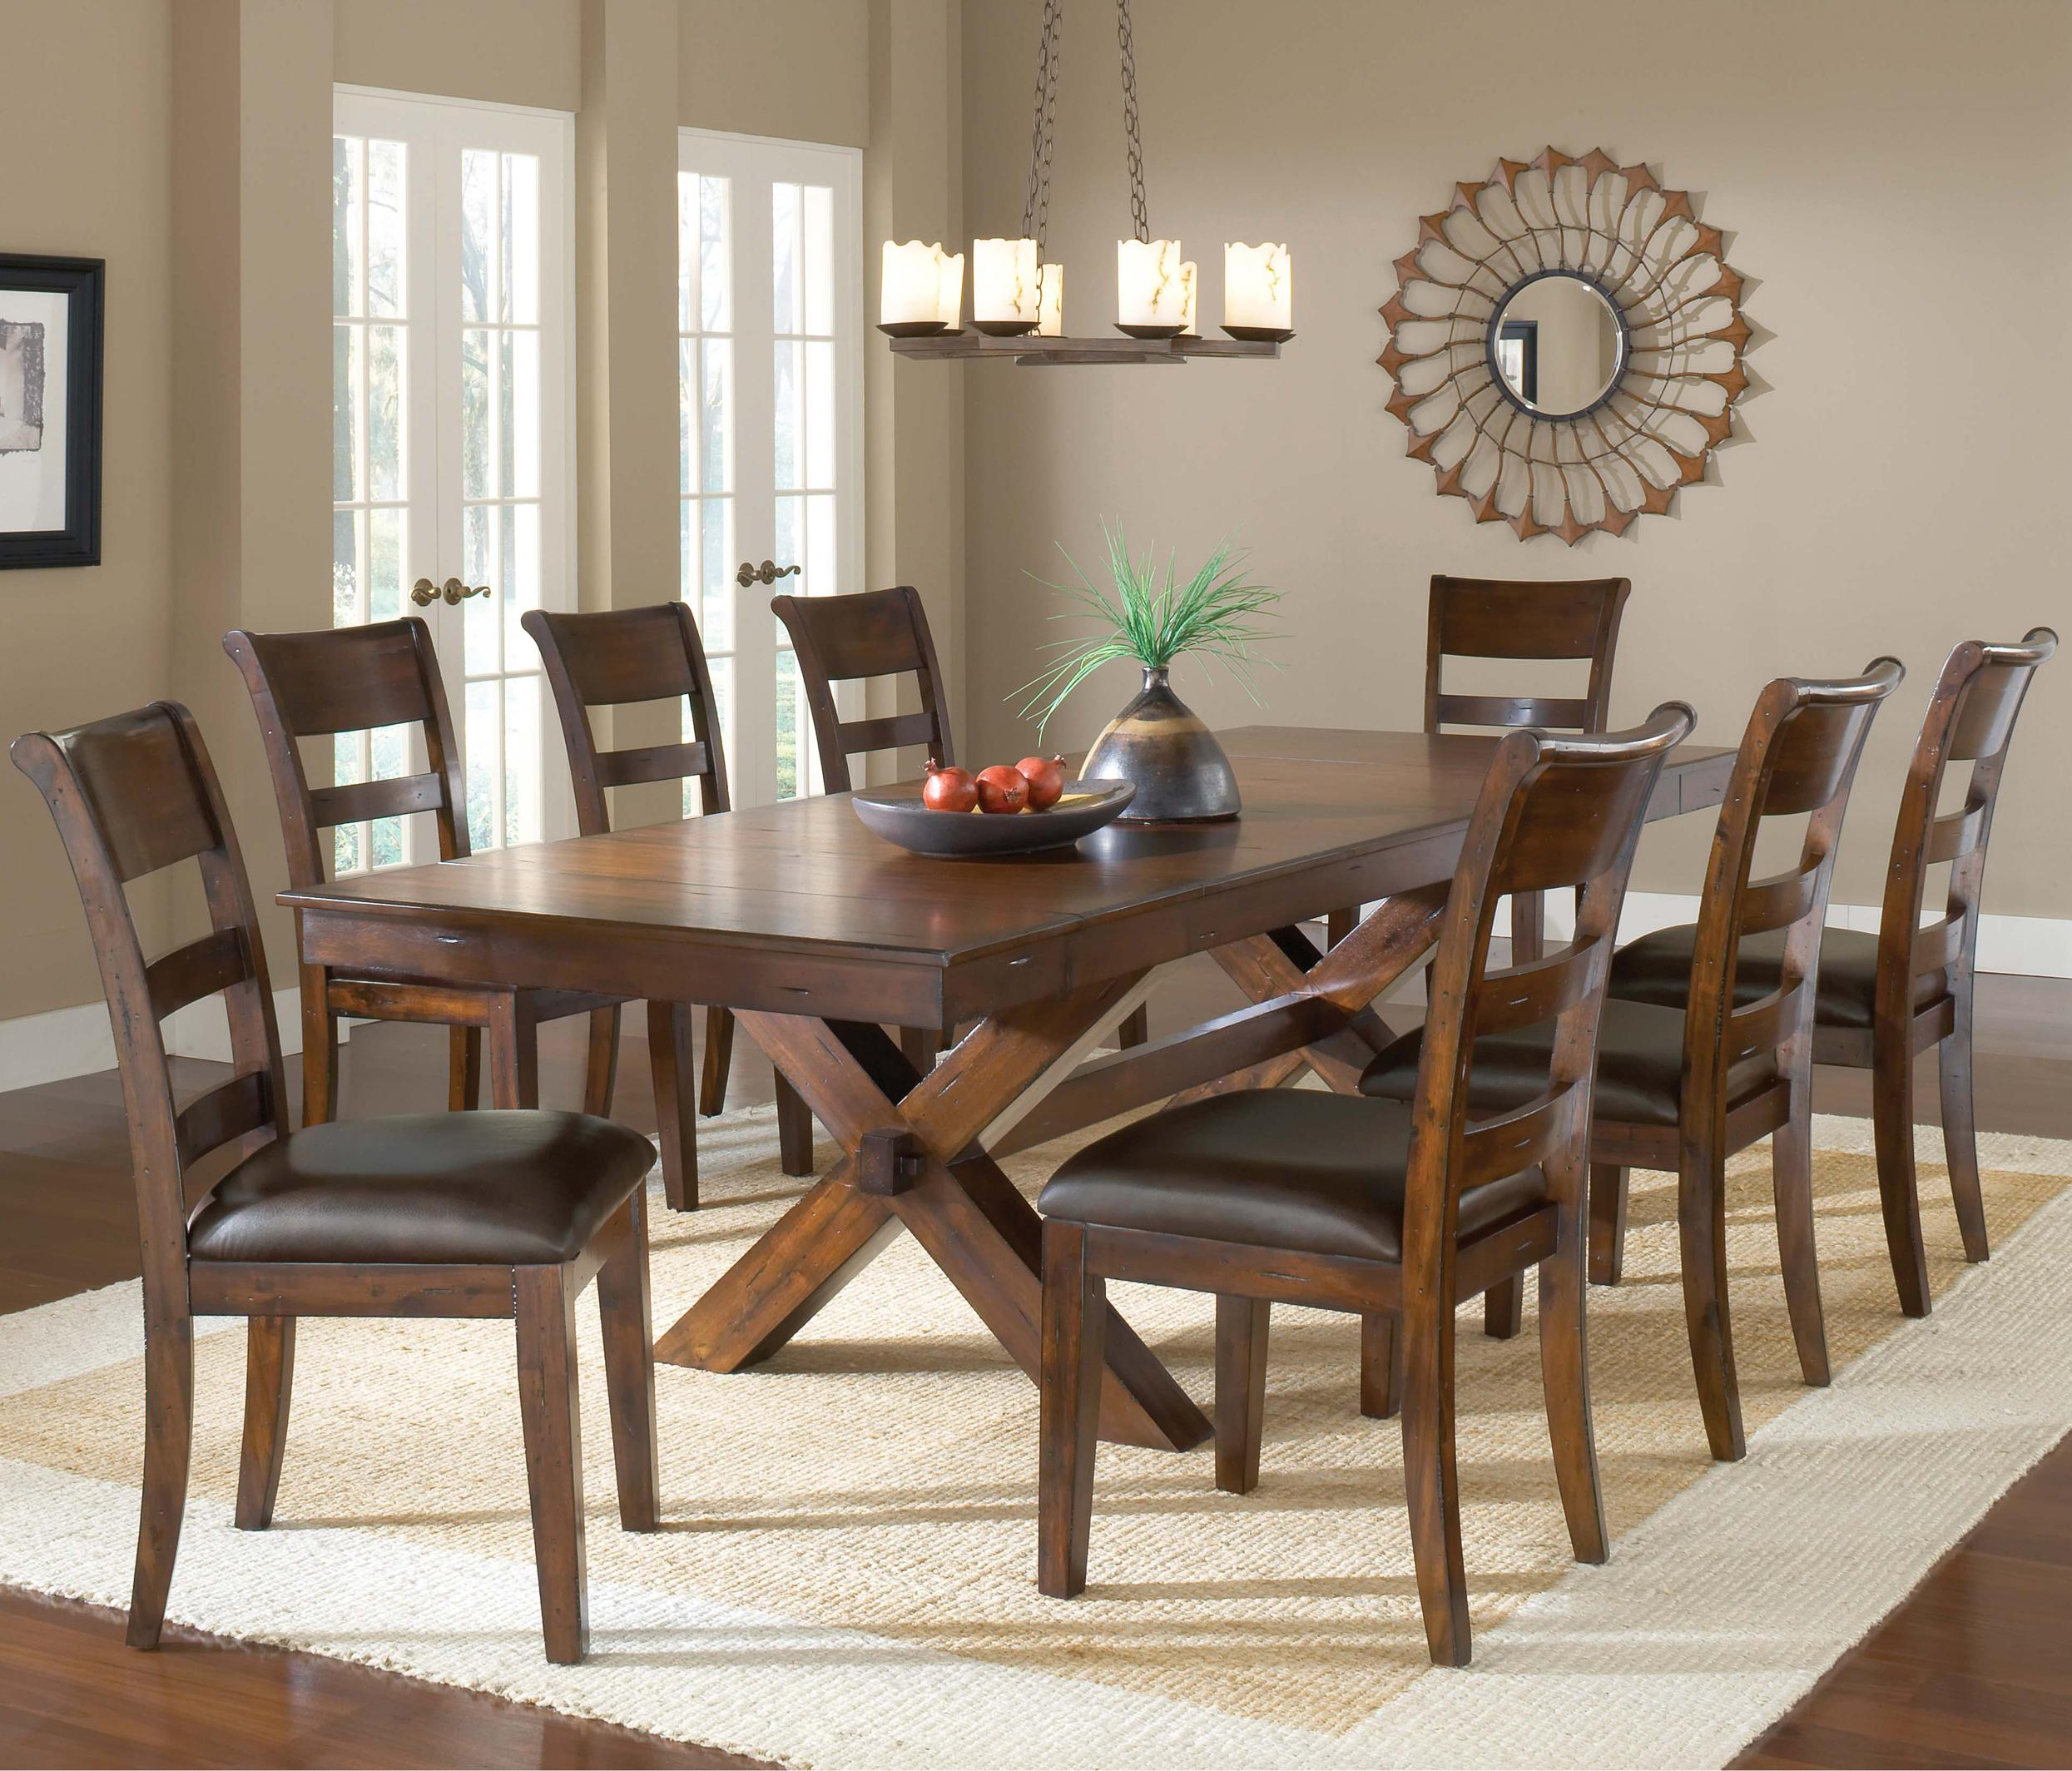 trestle dining table w